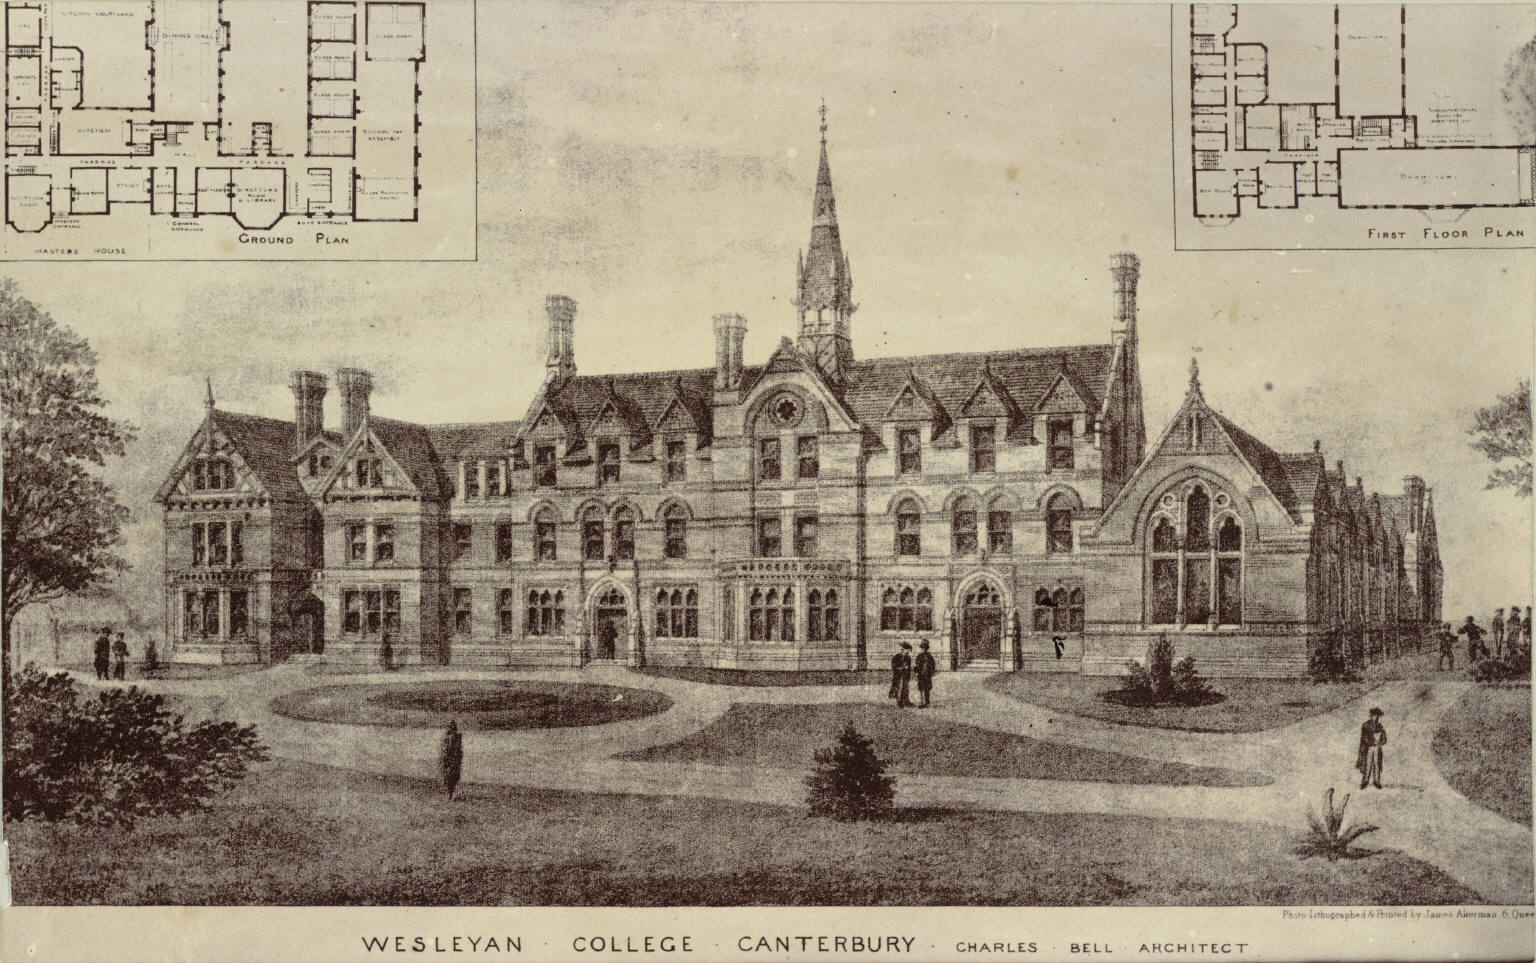 Plan for Wesleyan College, Canterbury